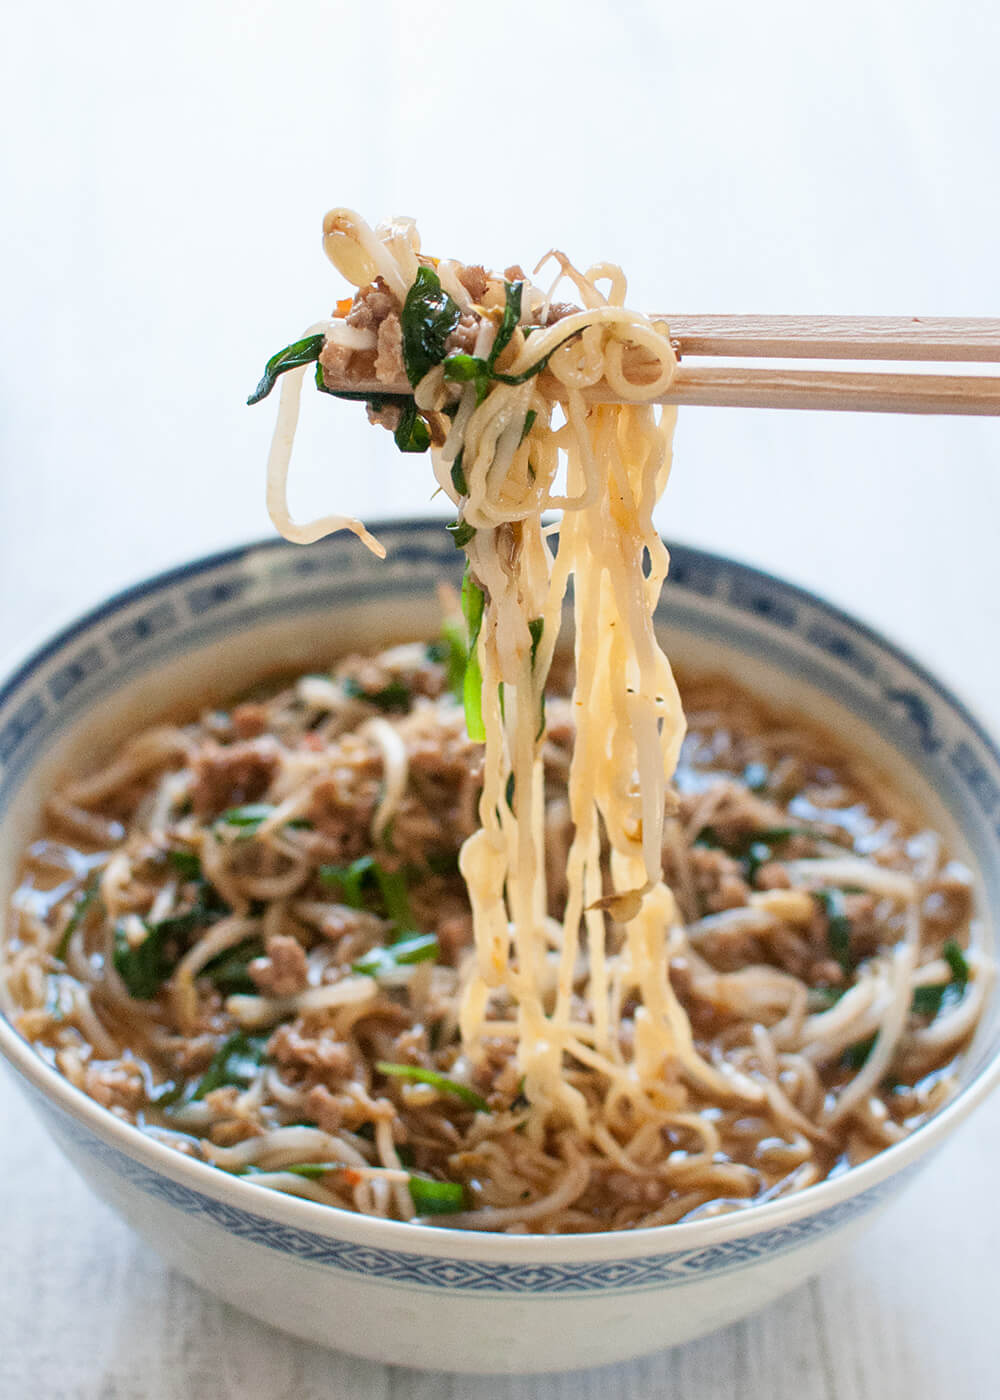 This is a quick Ramen recipe using store bought soup and noodles, but the toppings are homemade. With a little bit of effort to make good toppings, you can enjoy great ramen almost like the ones you order at restaurants.